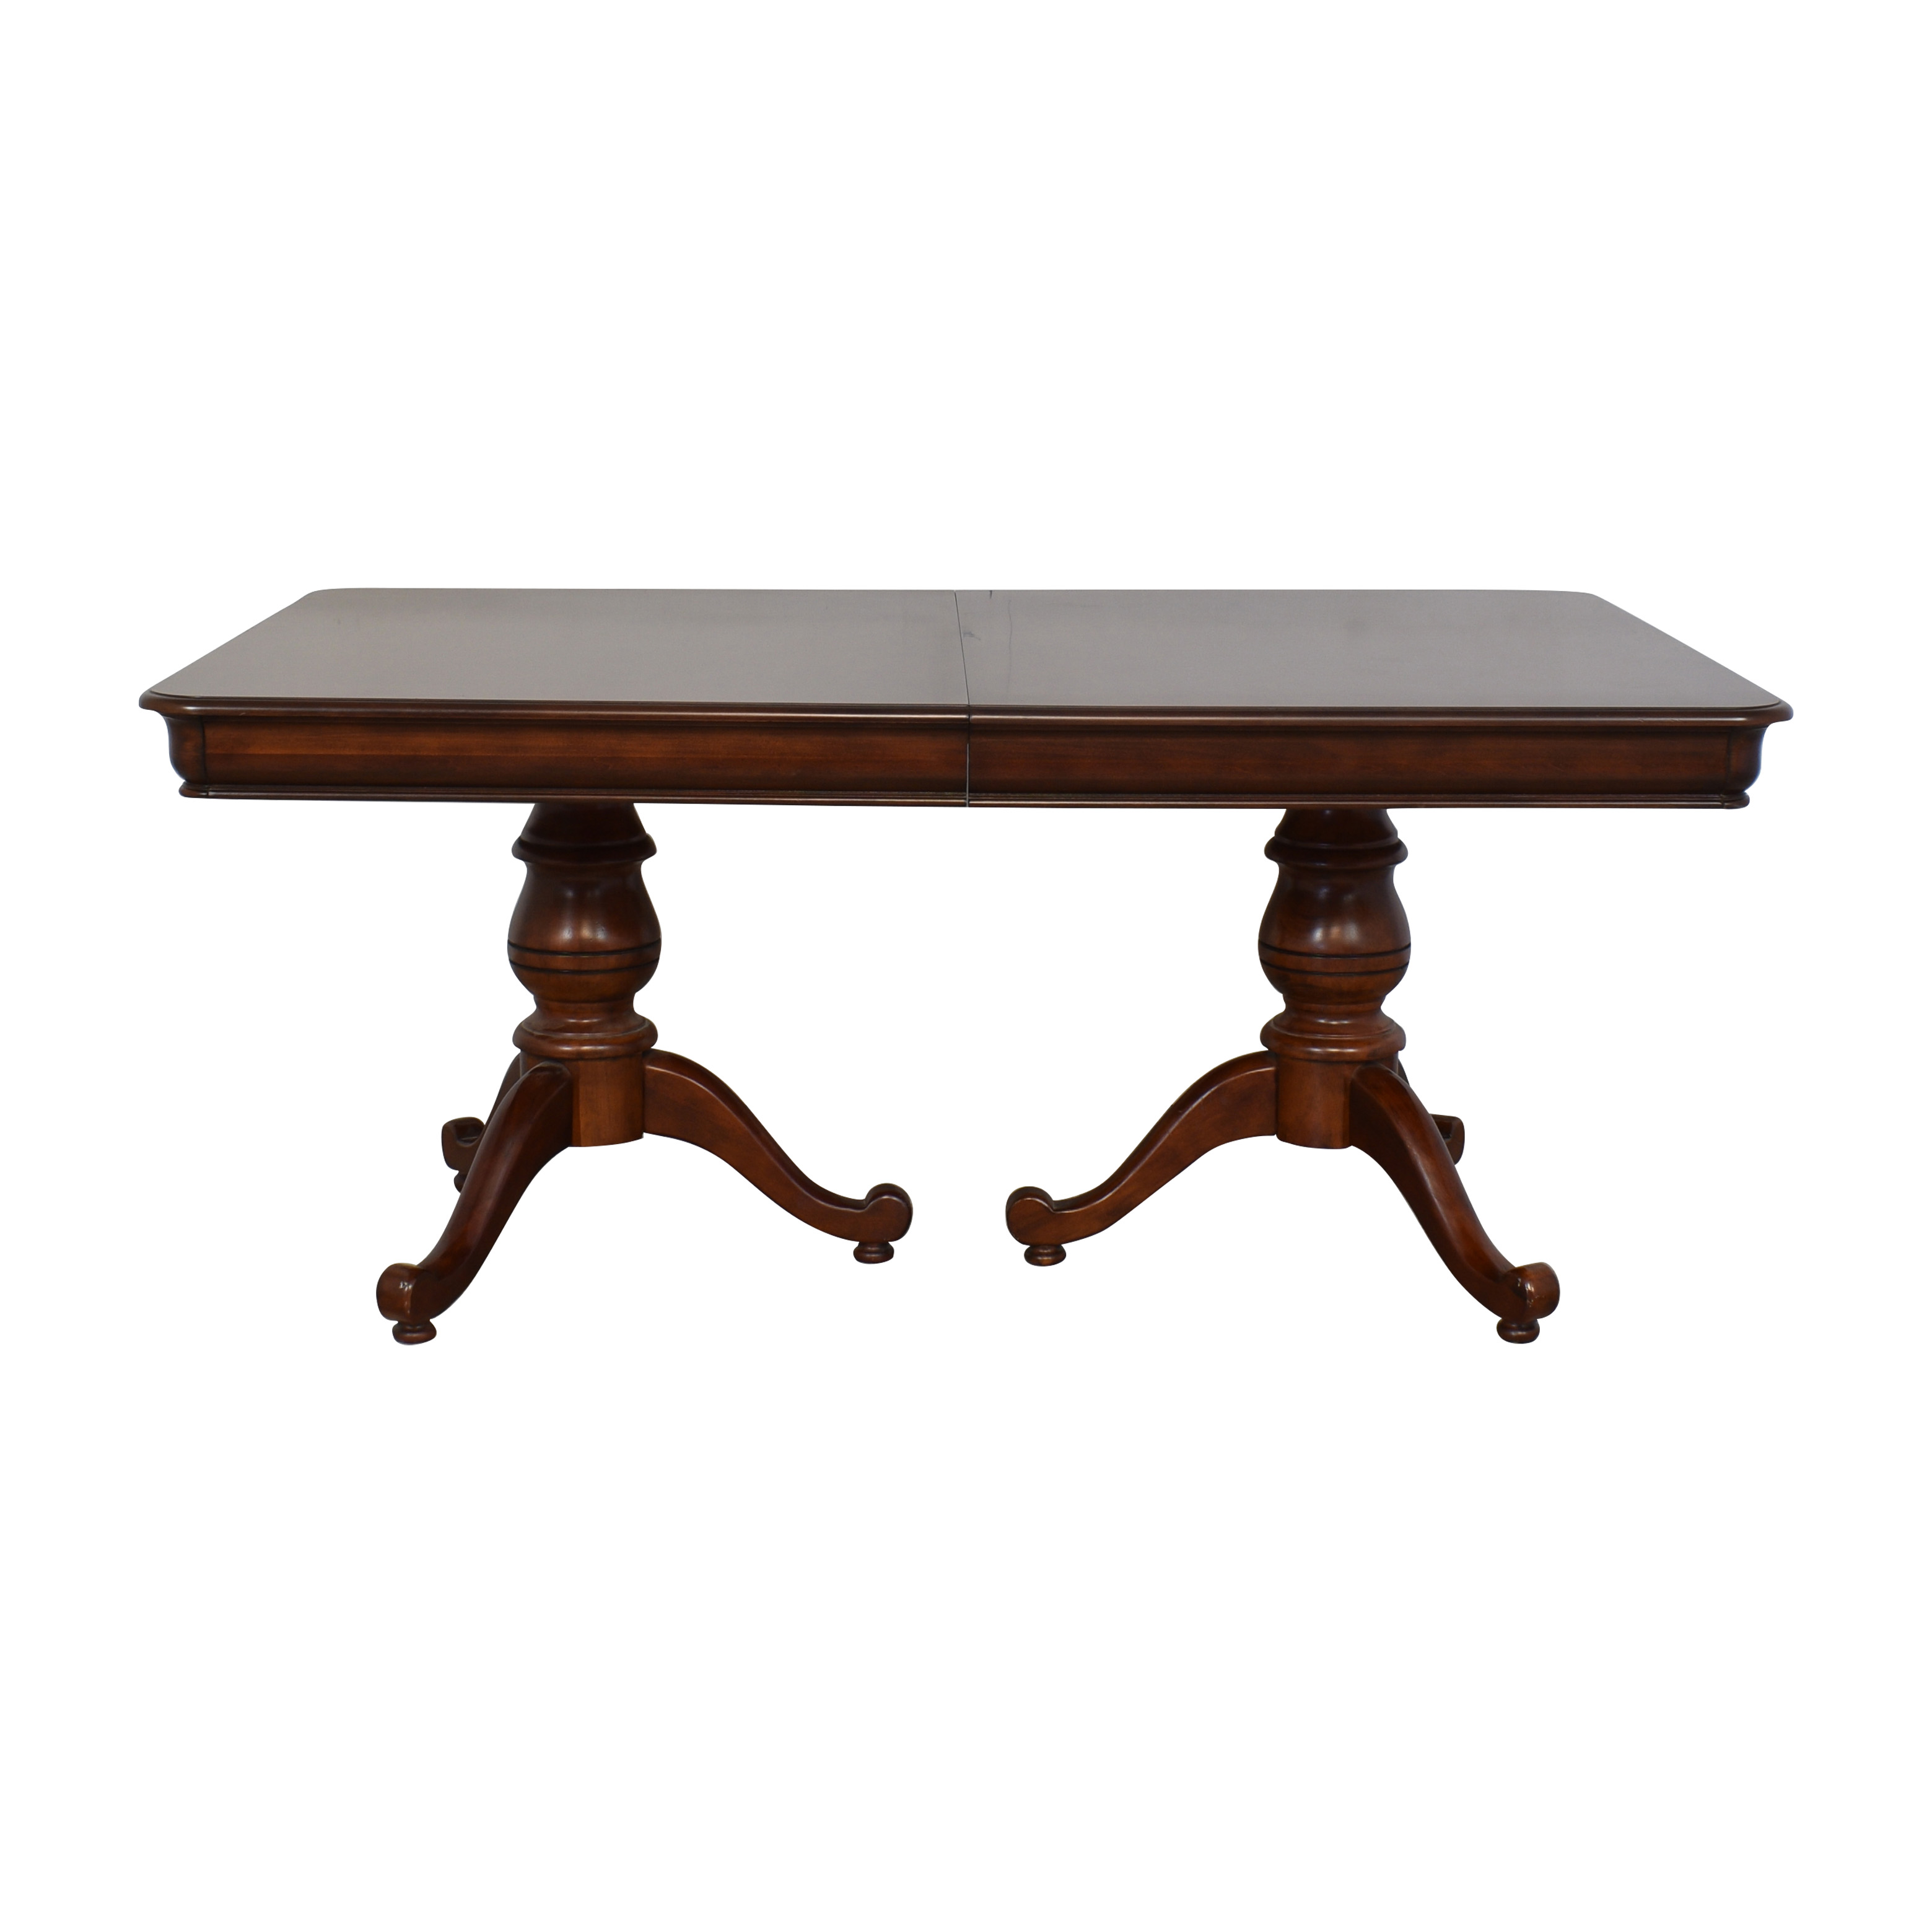 buy Macy's Macy's Double Pedestal Extendable Dining Table online